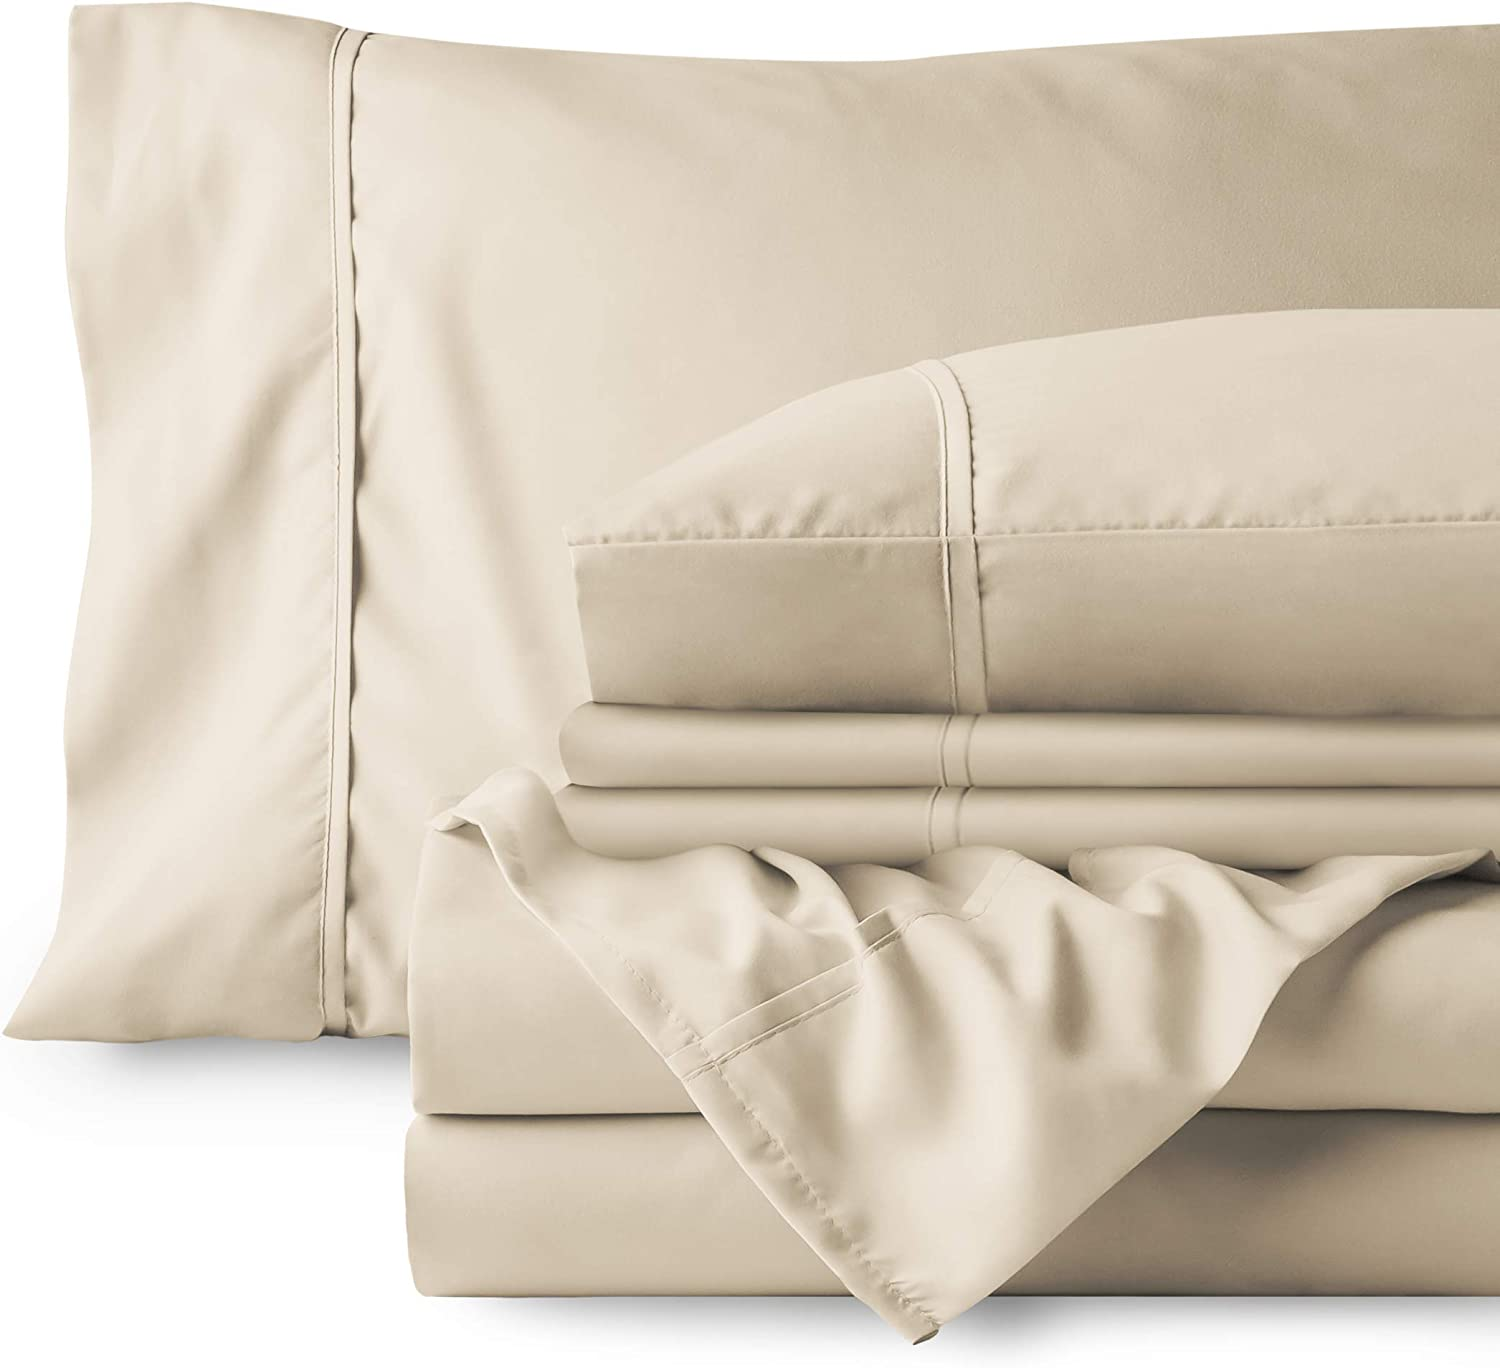 Bare Home Bedding Bundle - 6 Piece Microfiber Sheet Set with 4 Pillowcases (Queen, Sand)